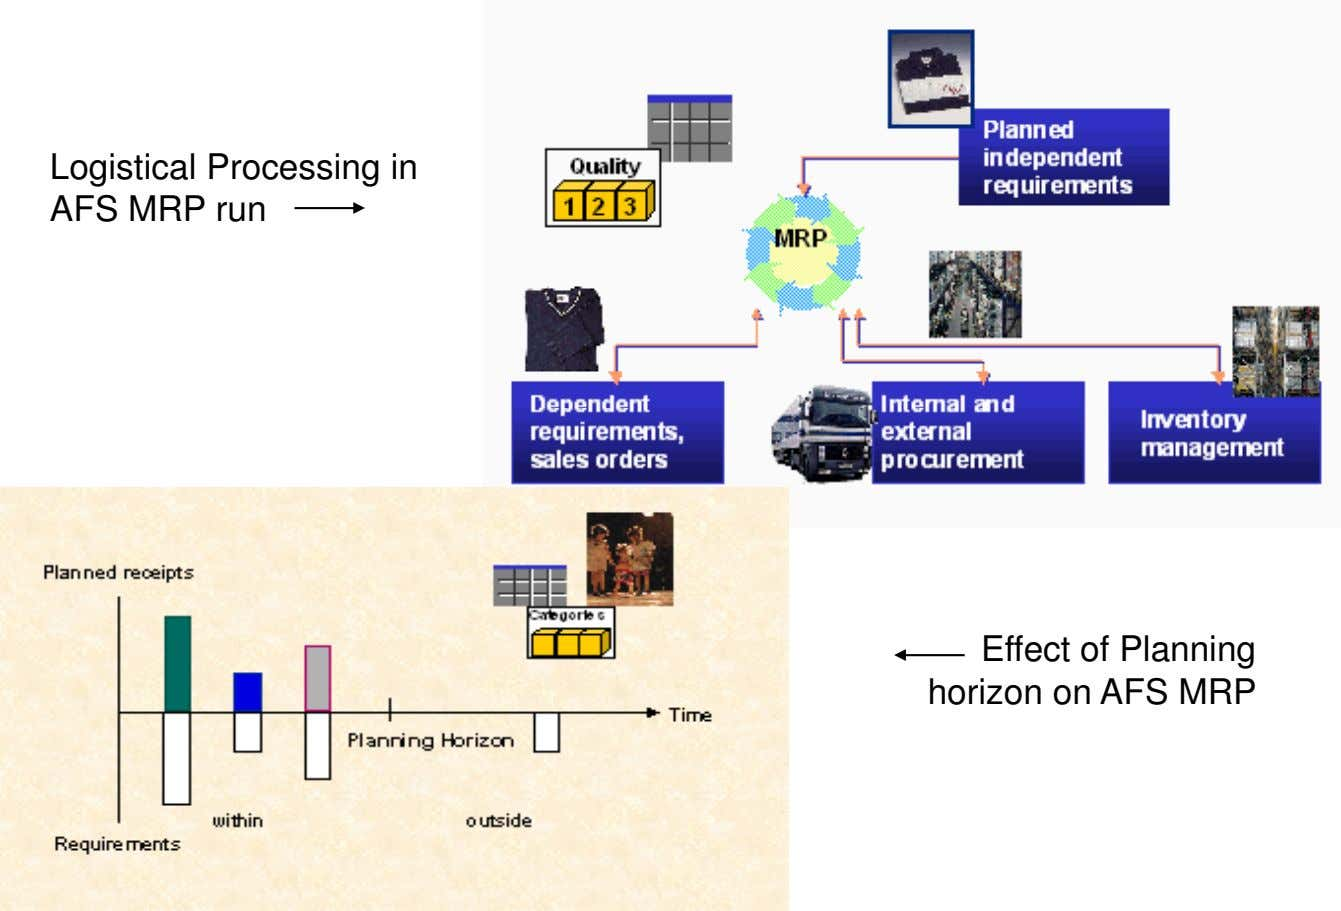 Logistical Processing in AFS MRP run Effect of Planning horizon on AFS MRP